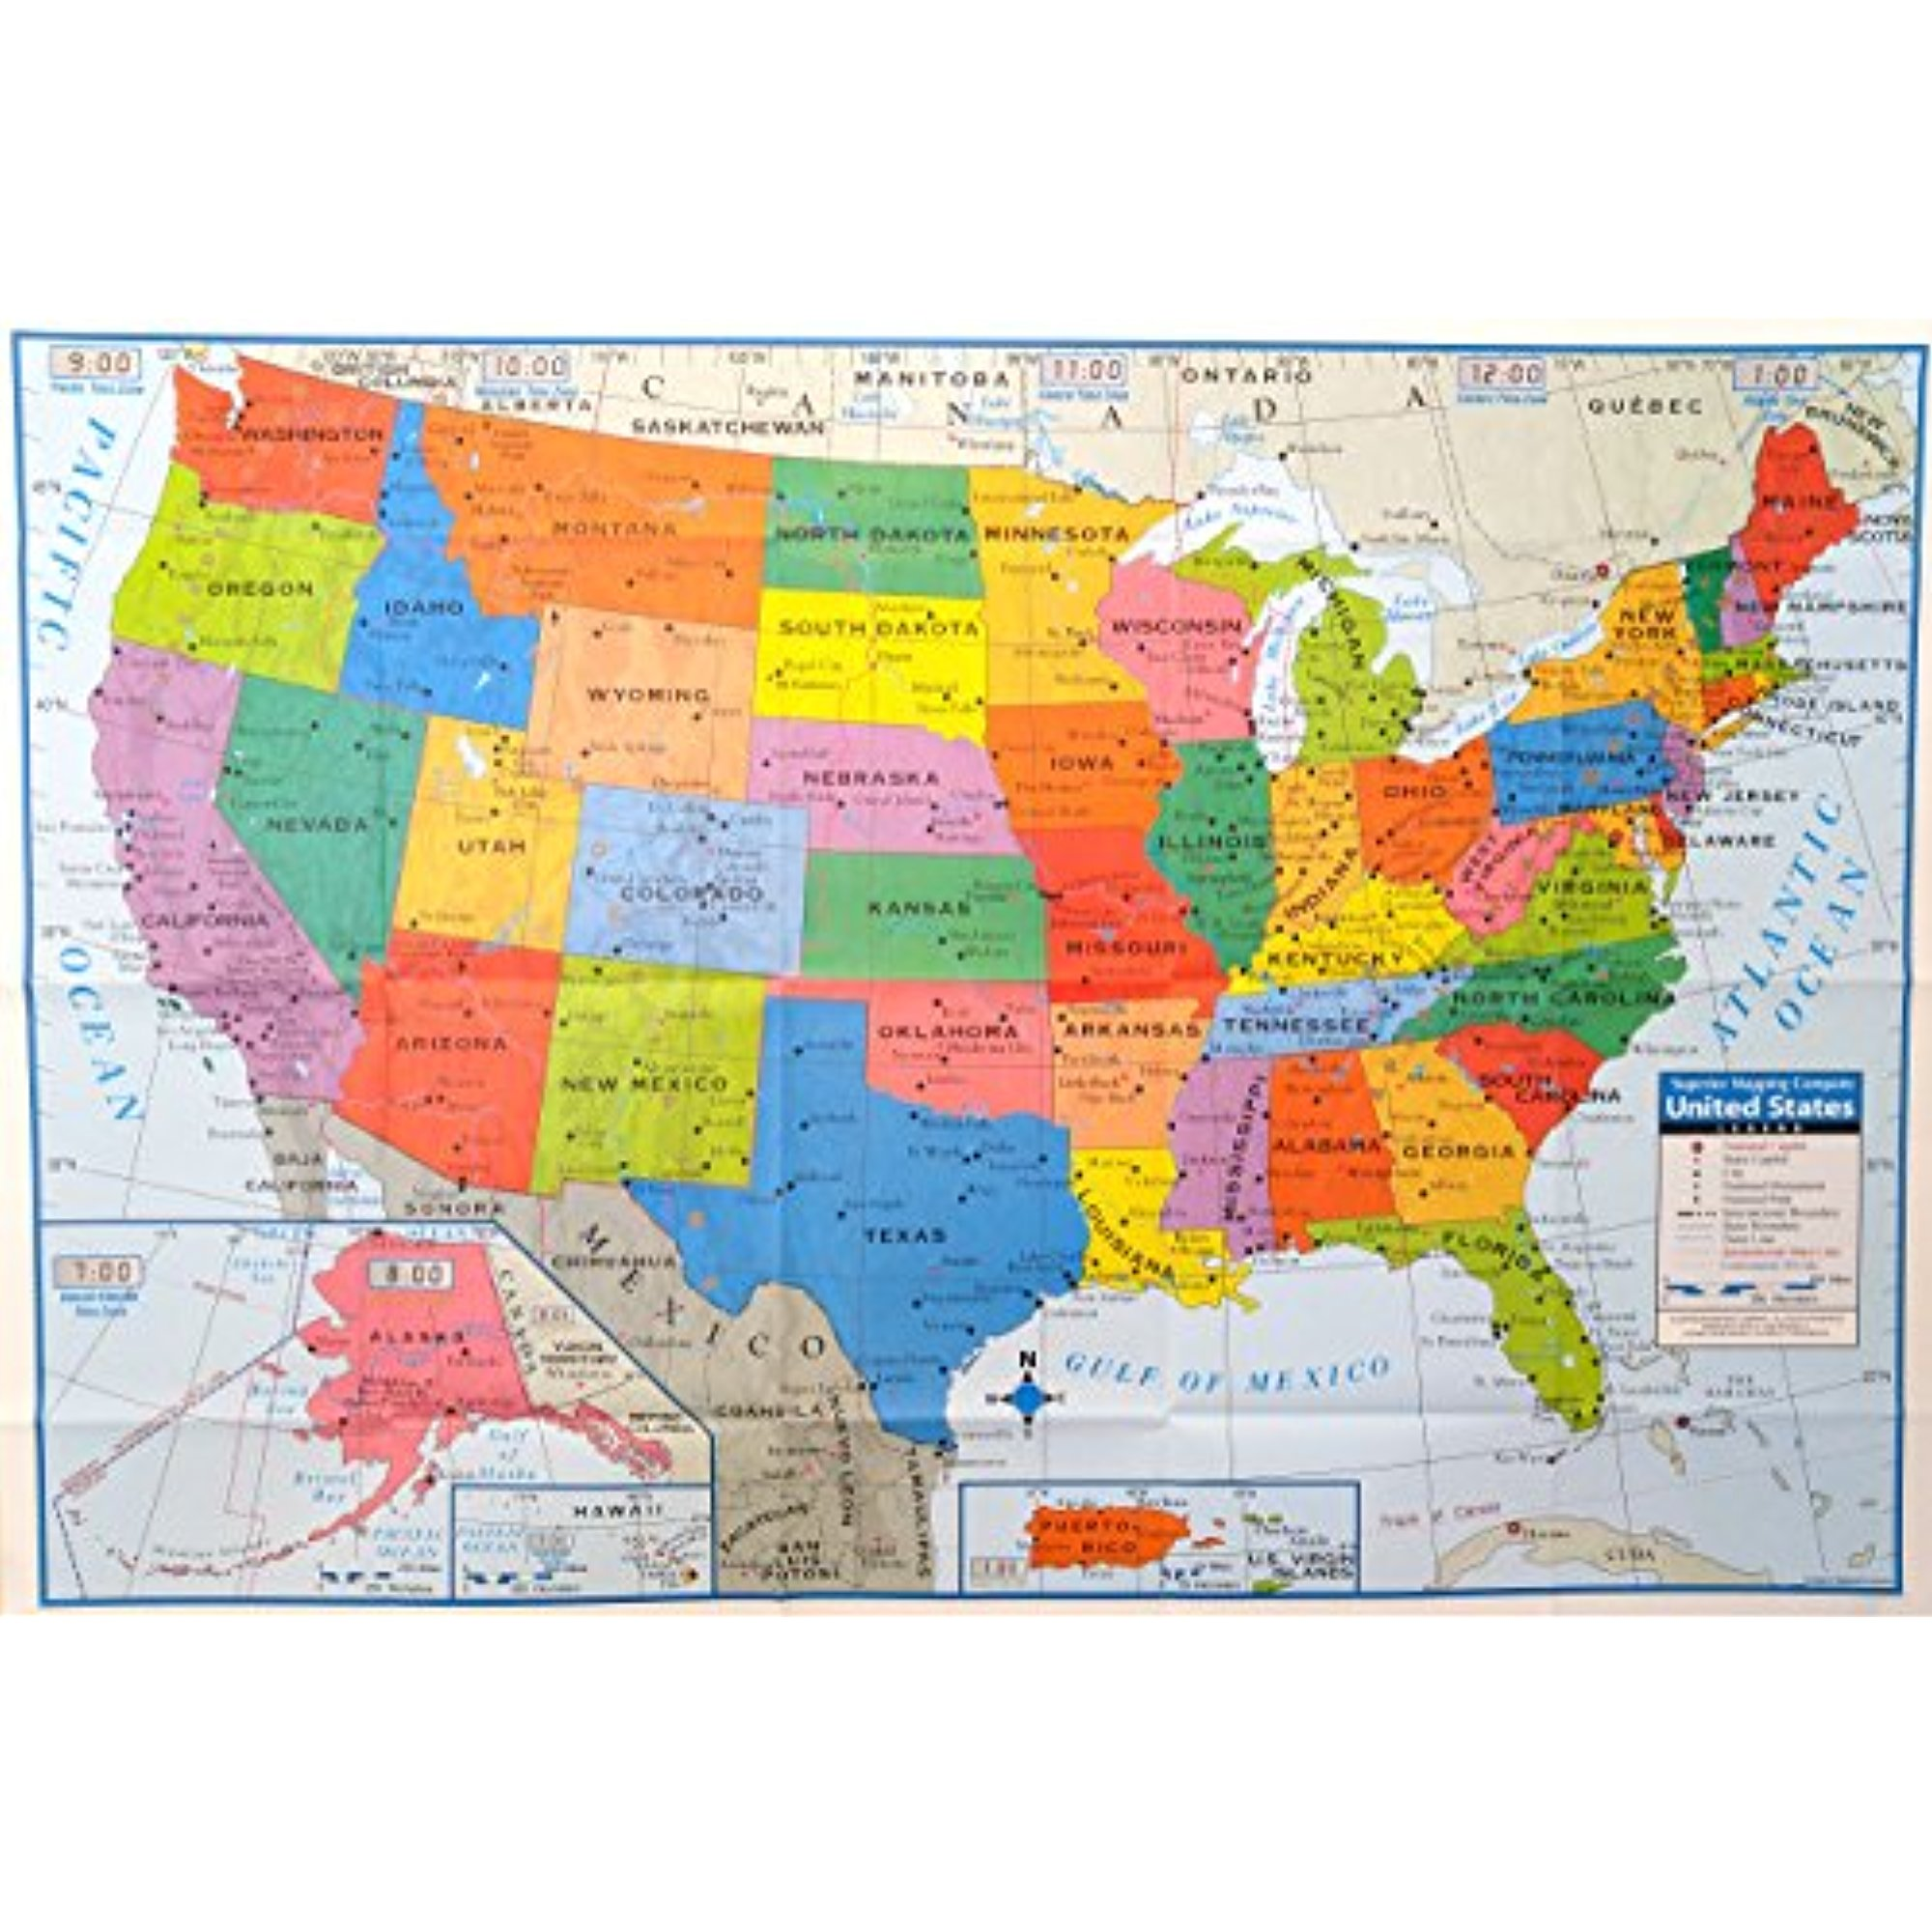 Are you wanting to learn how to print labels? Superior Mapping Company United States Poster Size Wall Map 40 X 28 With Cities 1 Map Walmart Com